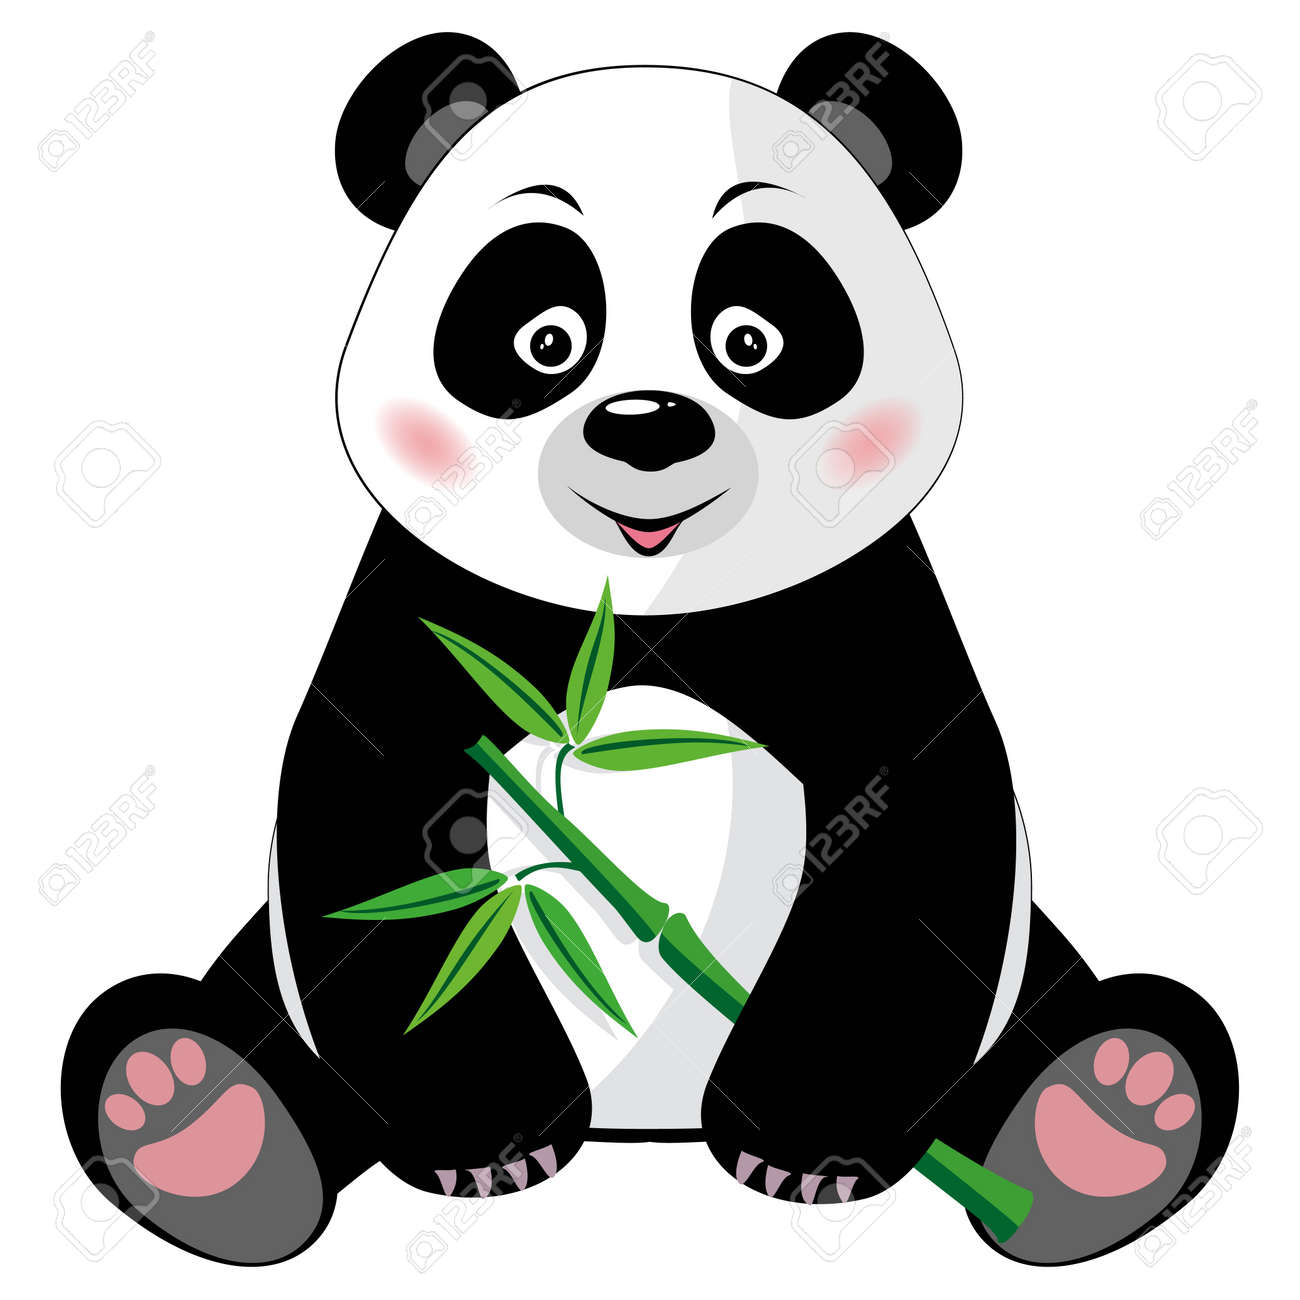 Sitting little cute panda with green bamboo isolated on white background Vector illustration, no transparency - 21171833